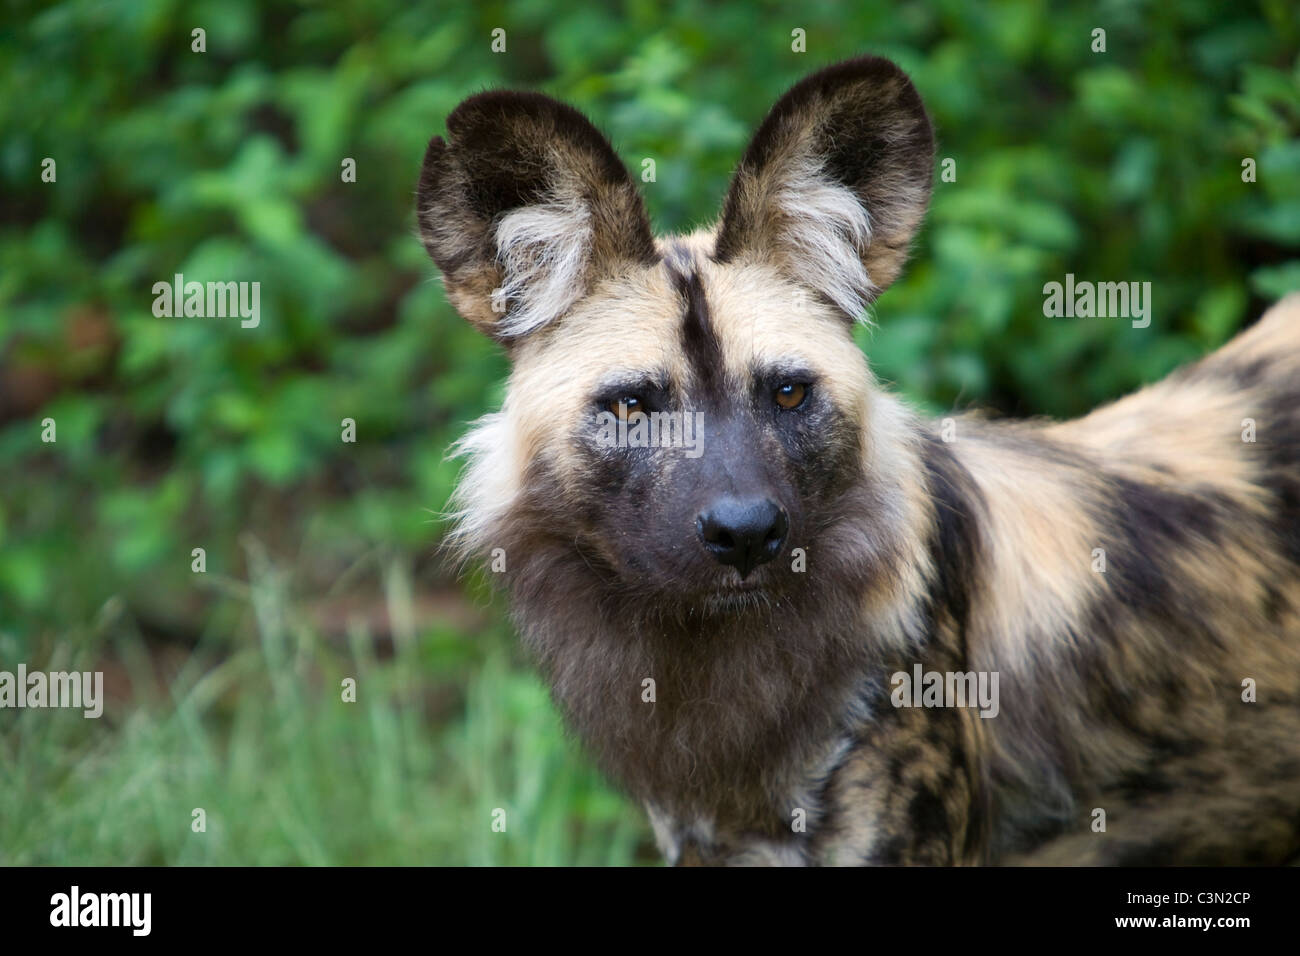 South Africa, Pretoria. One African Wild Dog, also Painted Hunting Dog, Lycaon pictus. Captivity. - Stock Image